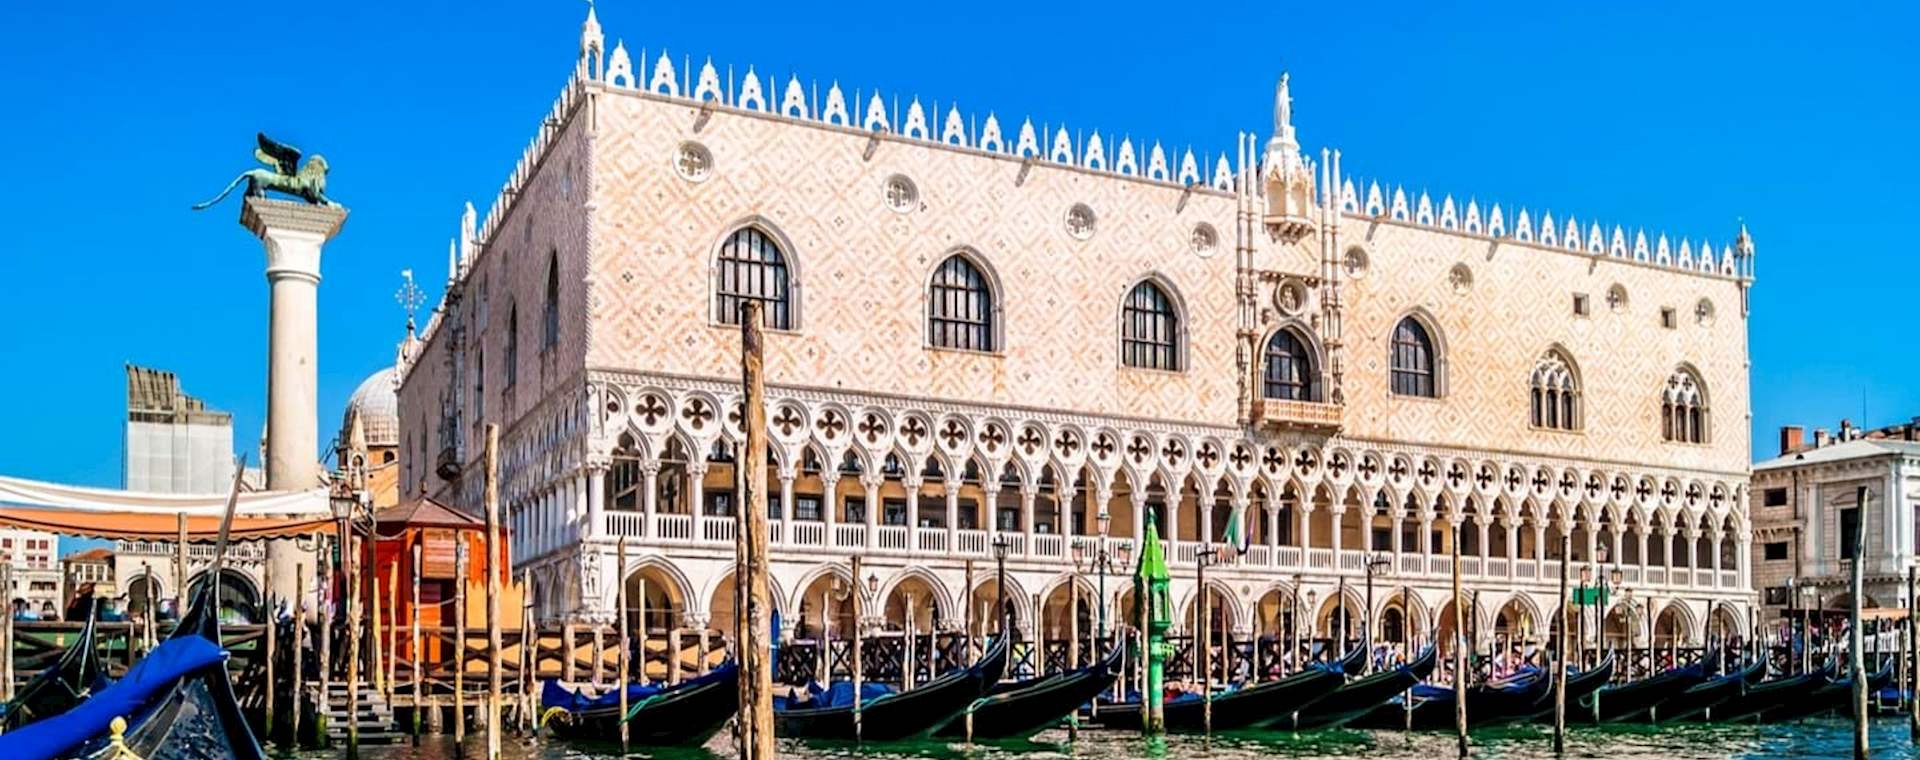 Best of Venice Tour with St. Mark's Basilica & Doge's Palace